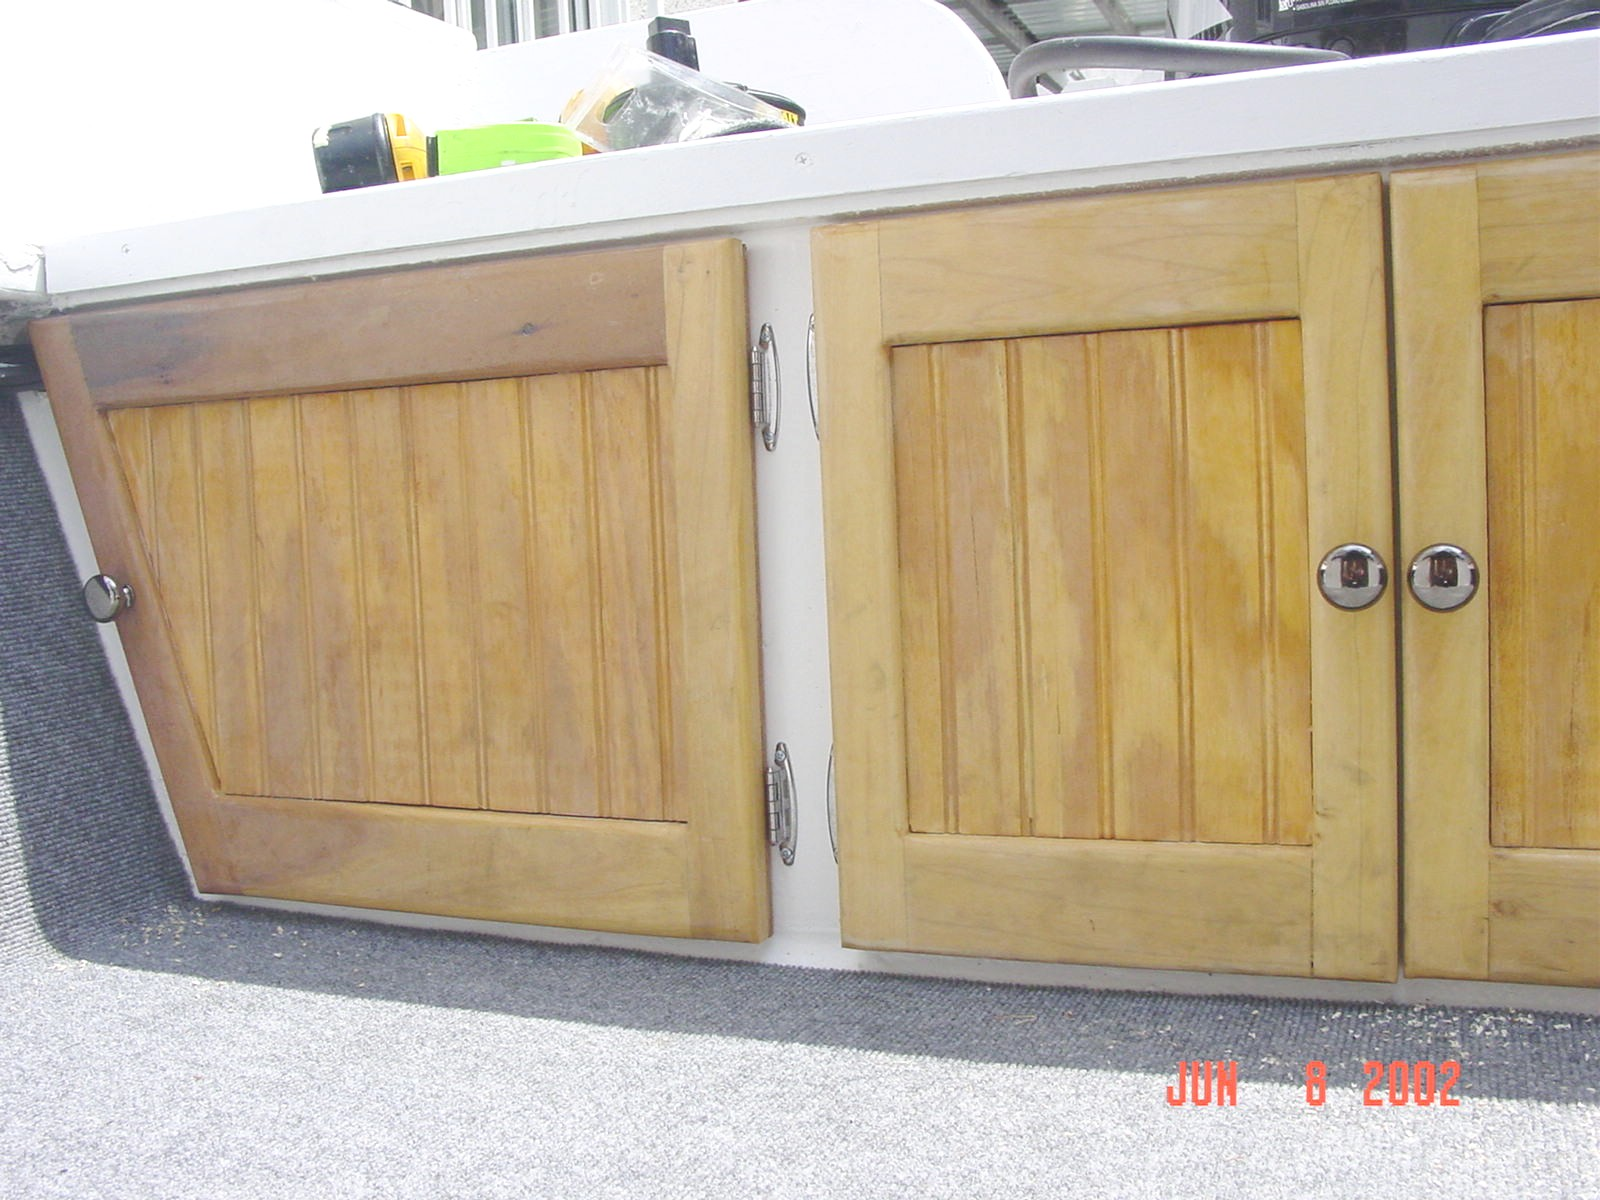 How do you build a wooden bulkhead door